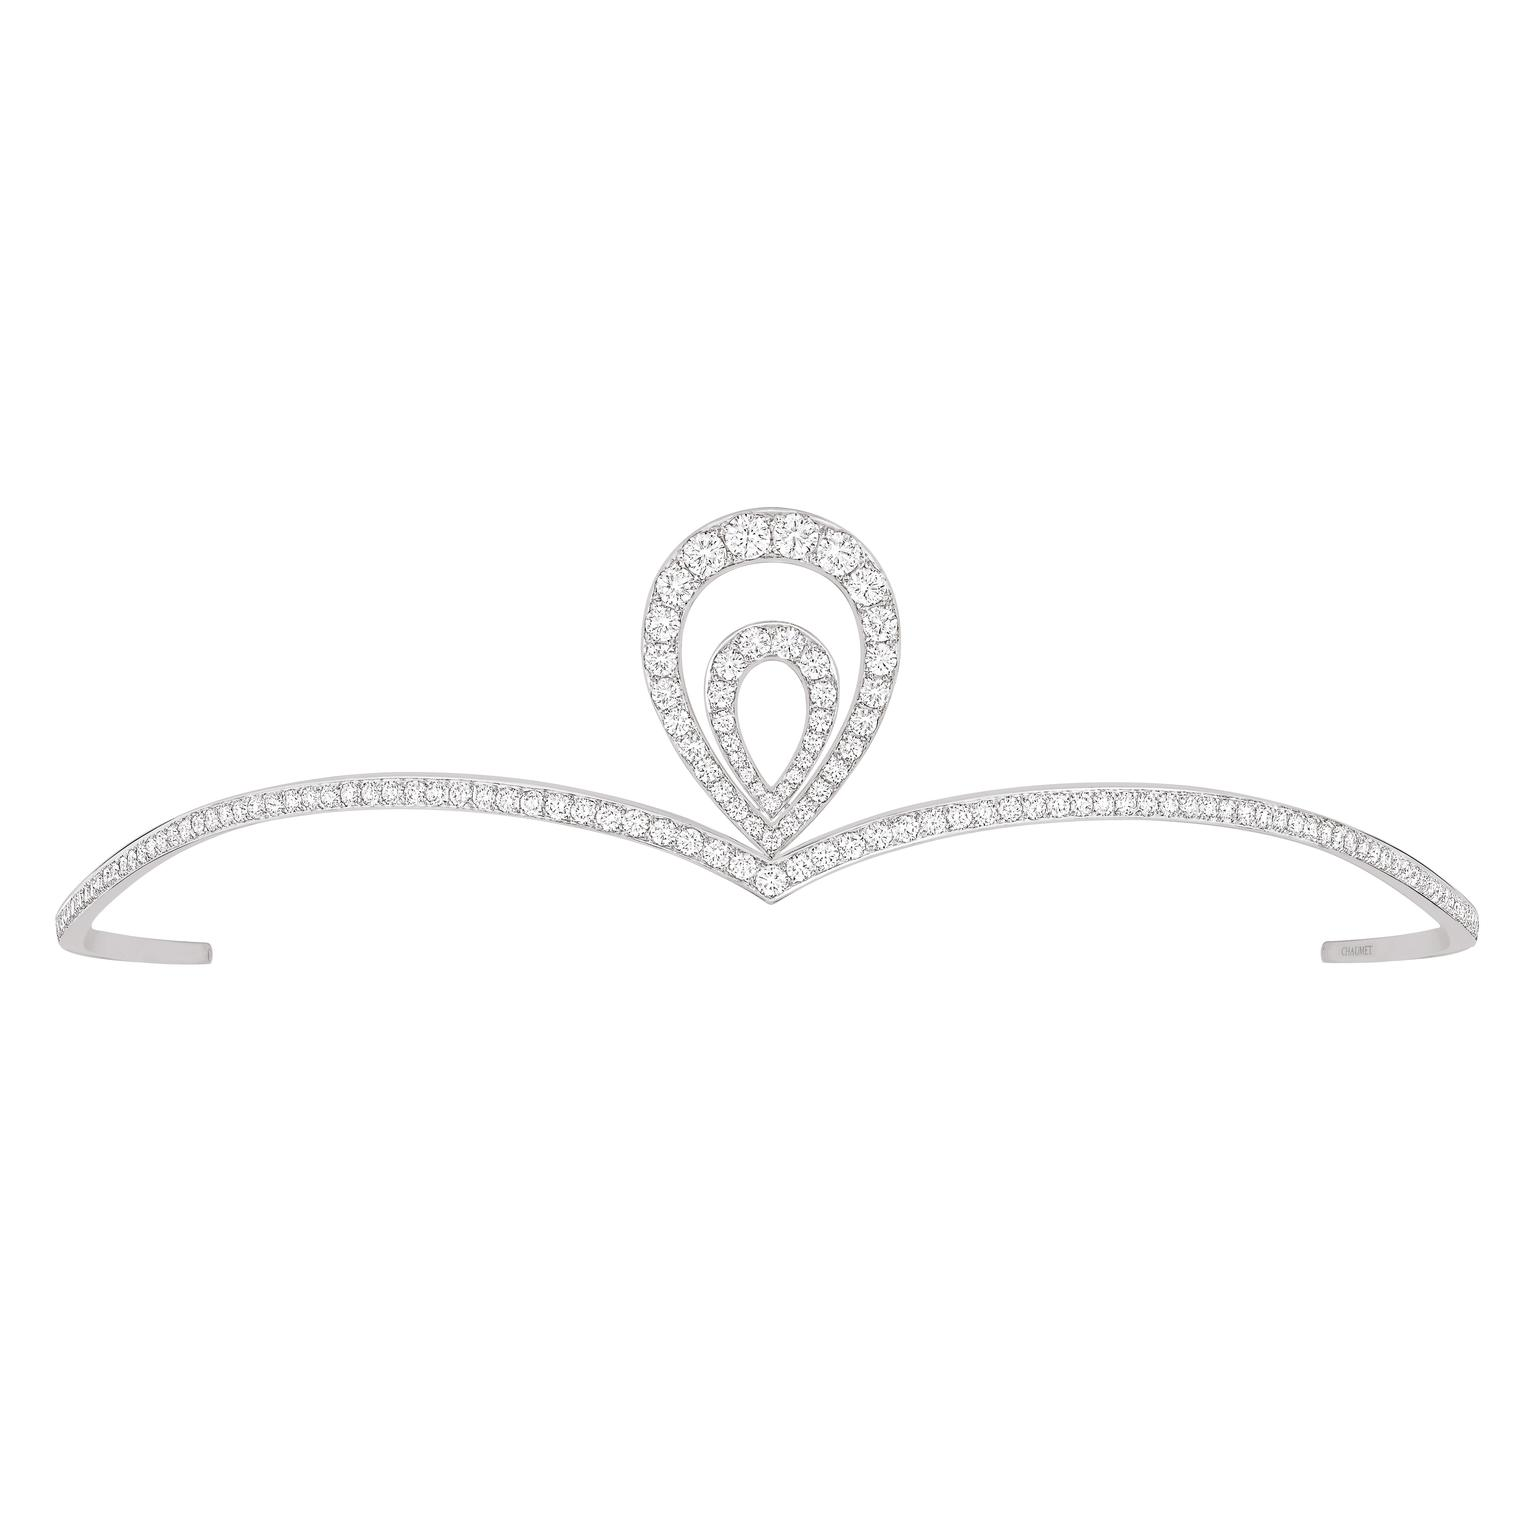 Joséphine Aigrette Tiara by Chaumet